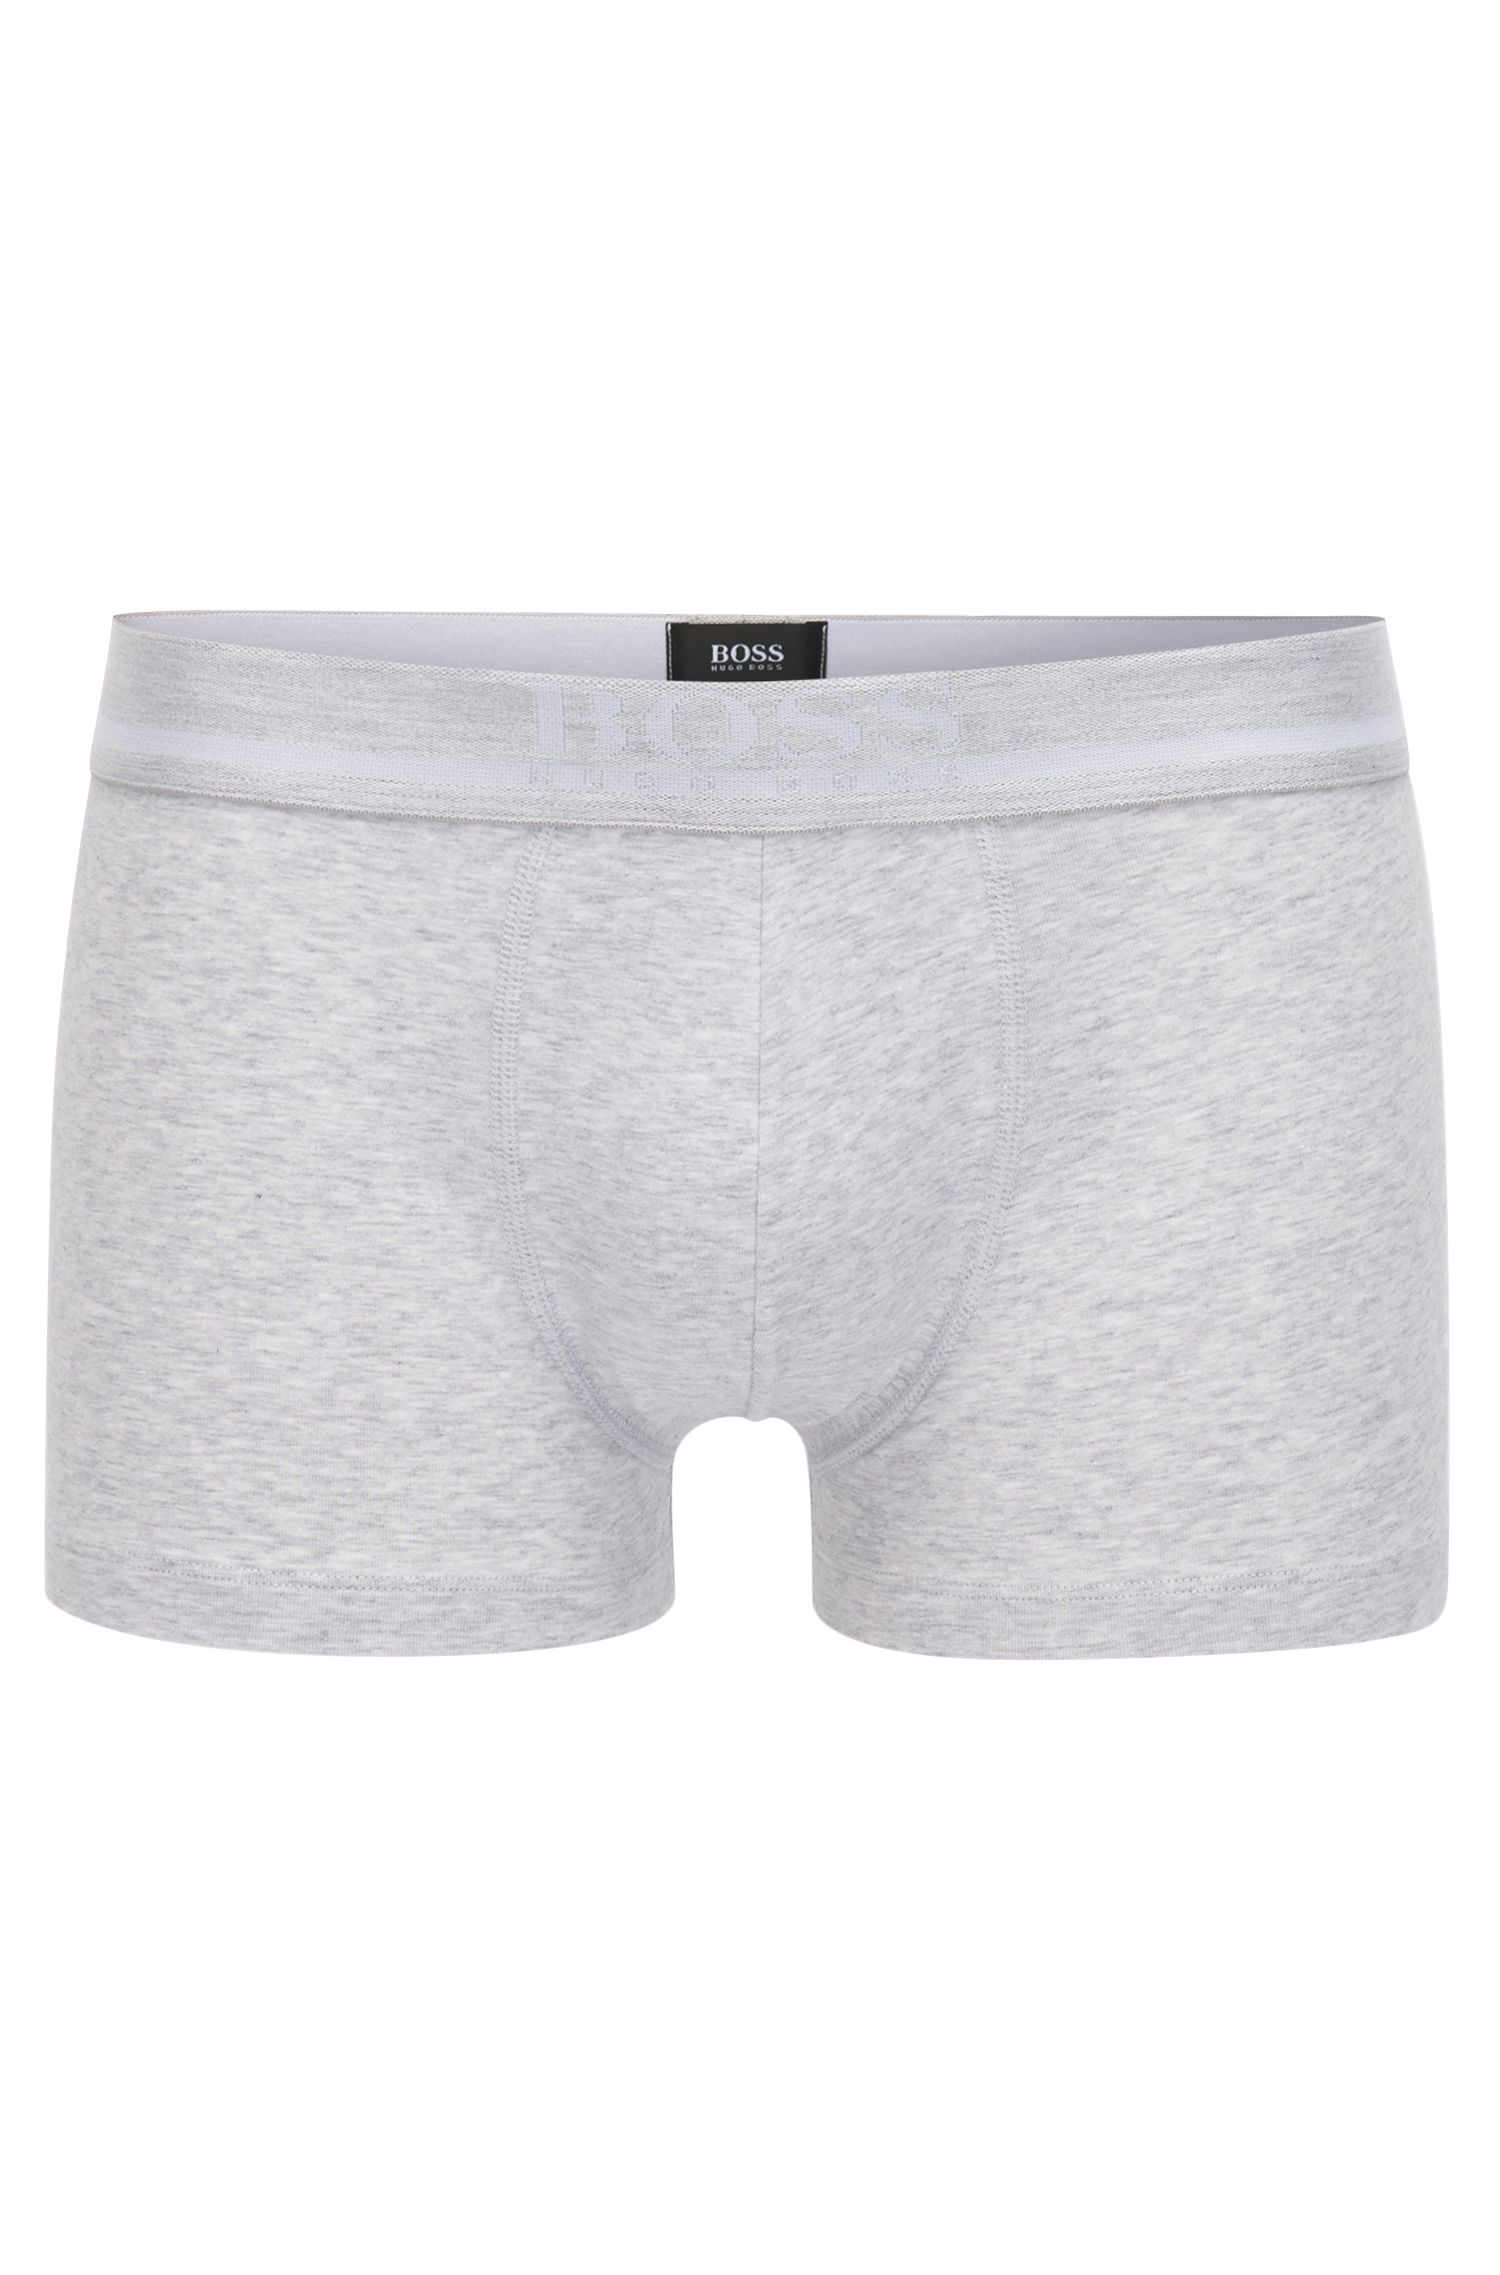 Straight-cut boxer-briefs with jacquard logo